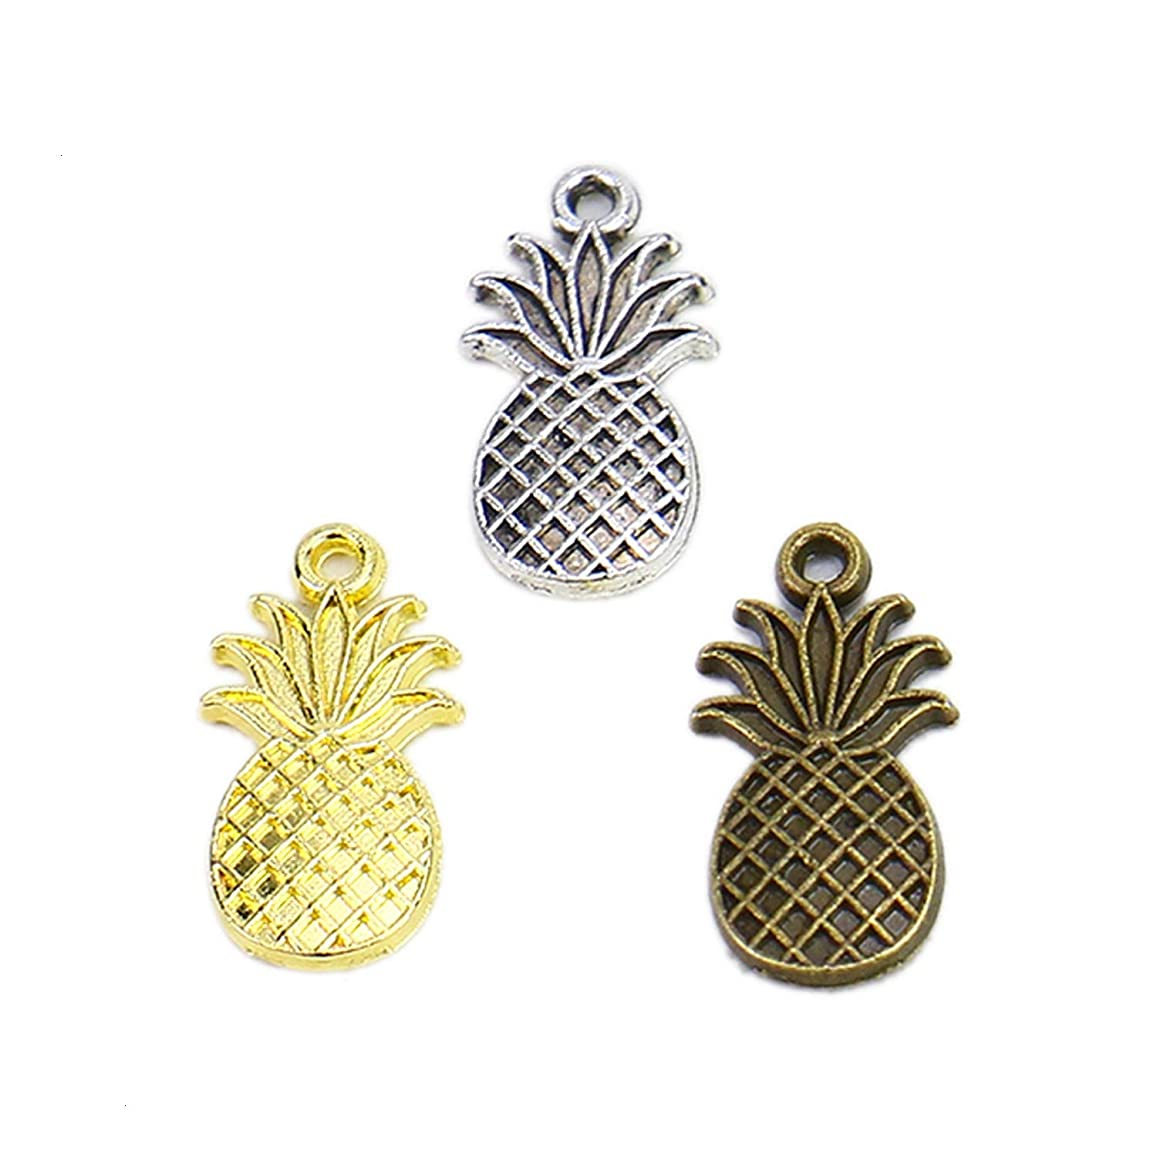 Monrocco 120Pcs 3 Color Pineapple Charms Pendant,Alloy Fruit Charms Pendant for Jewelry Making and Crafting